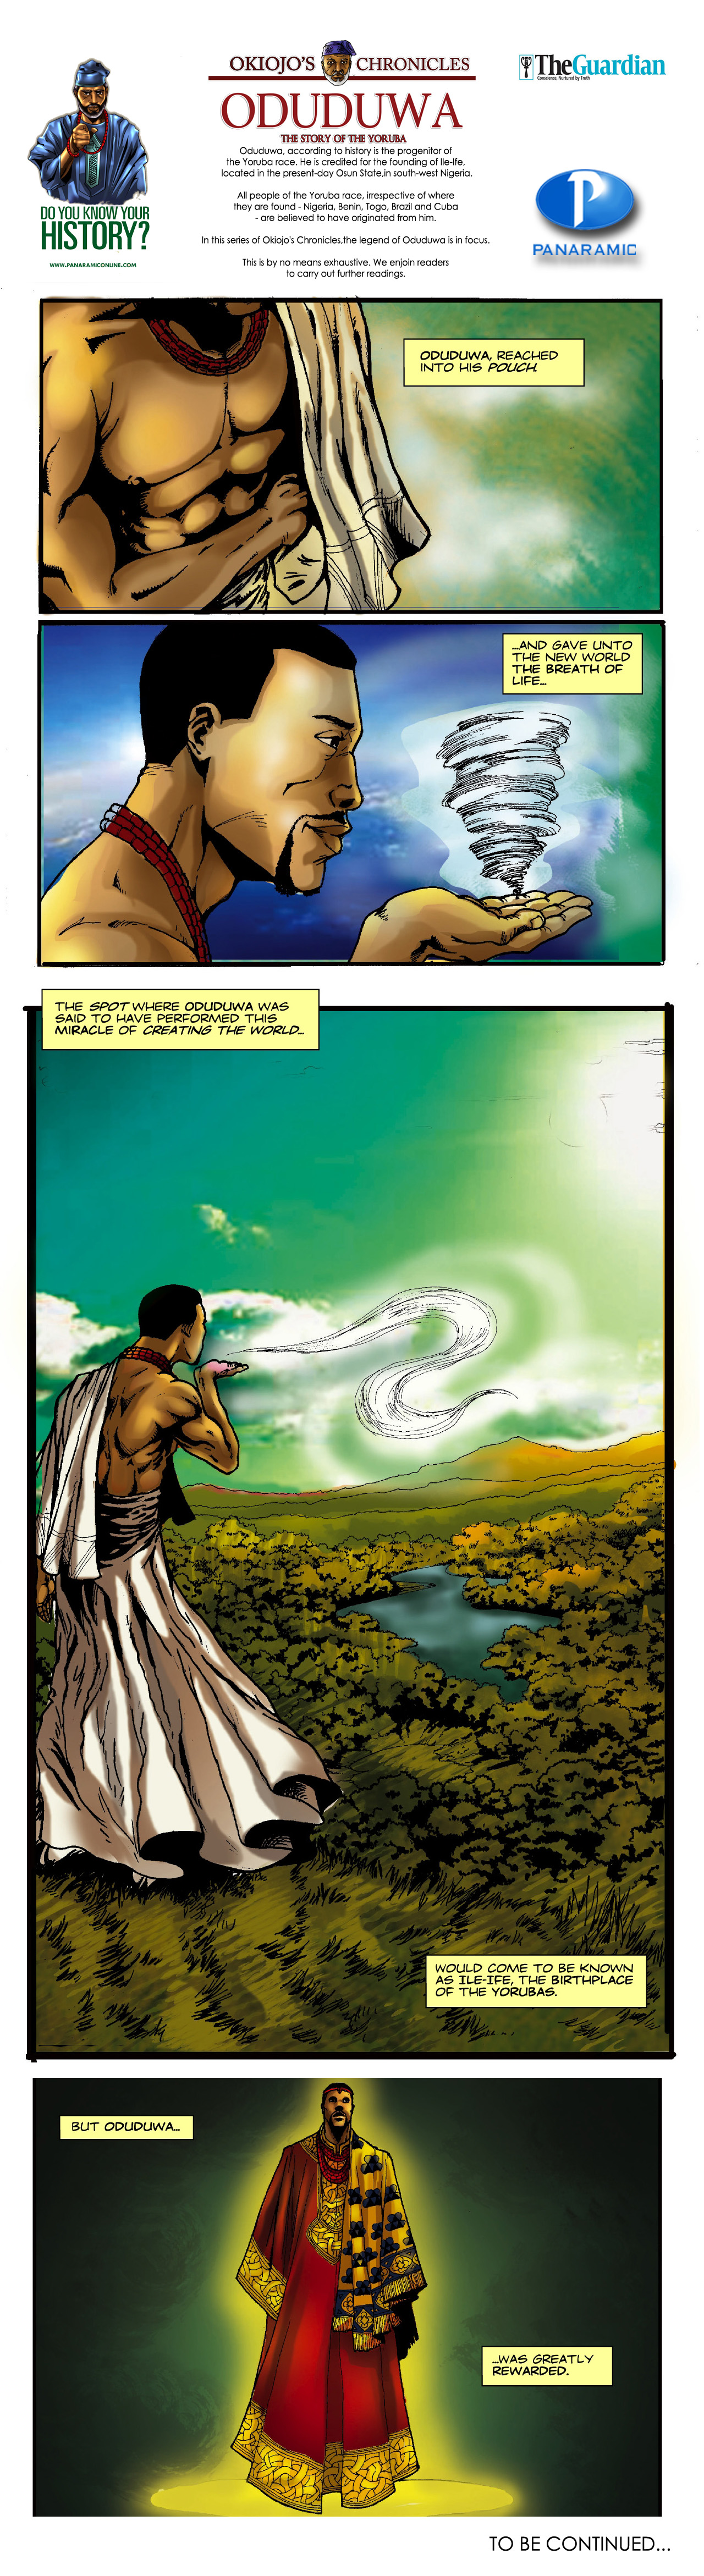 Panaramic's - Okiojo's Chronicles Oduduwa 8